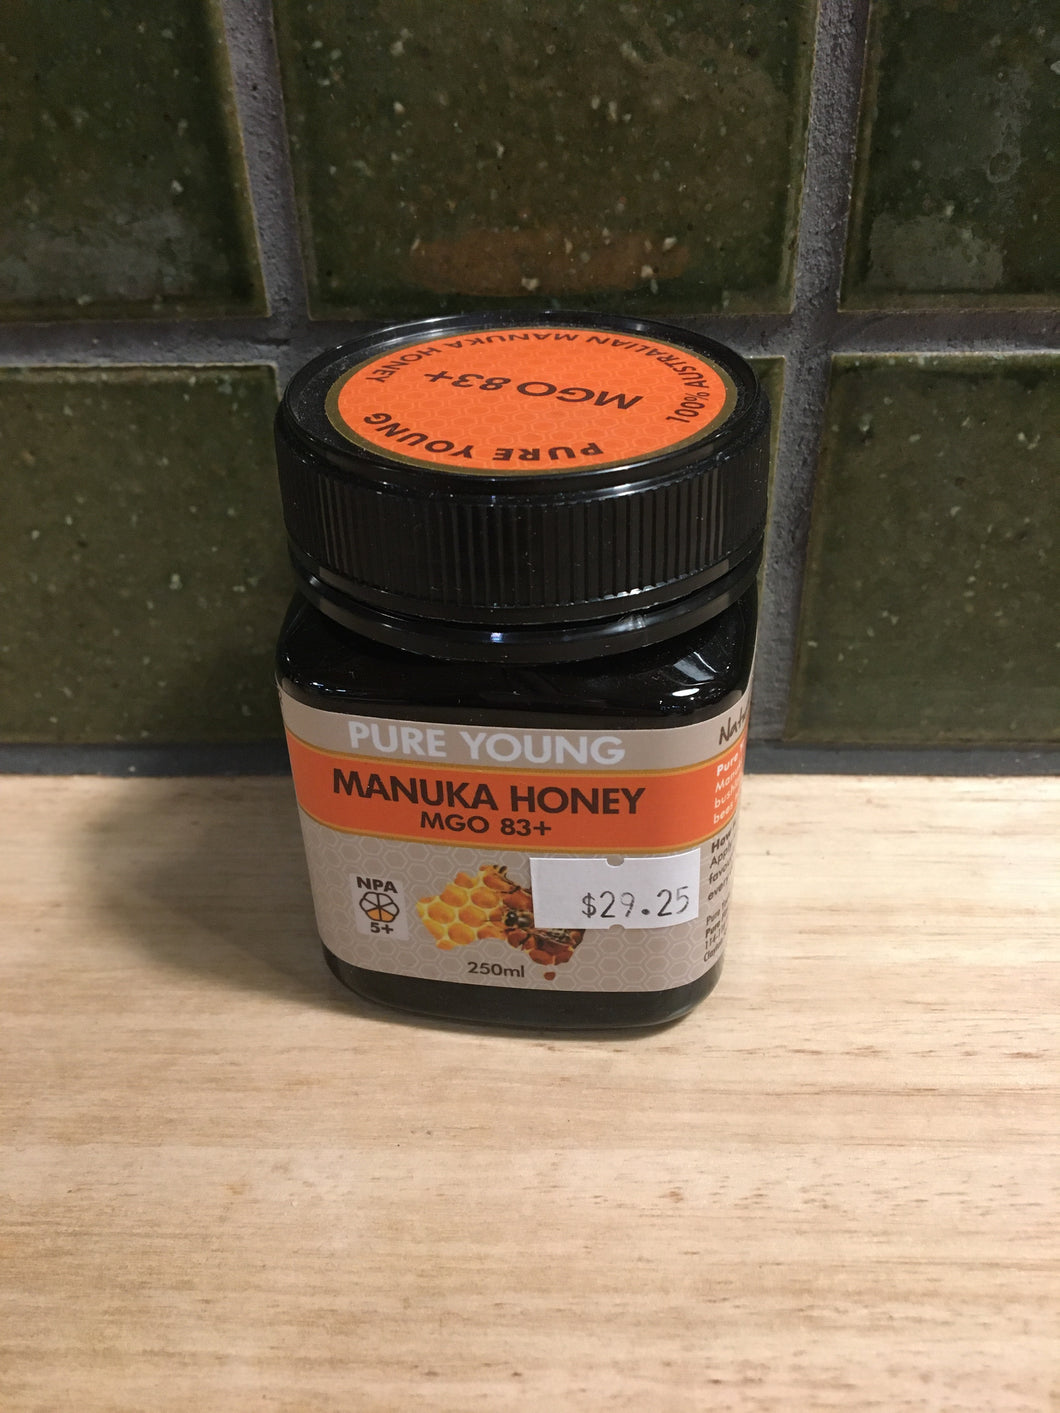 Pure Young Manuka Honey MGO 83+ 250mL